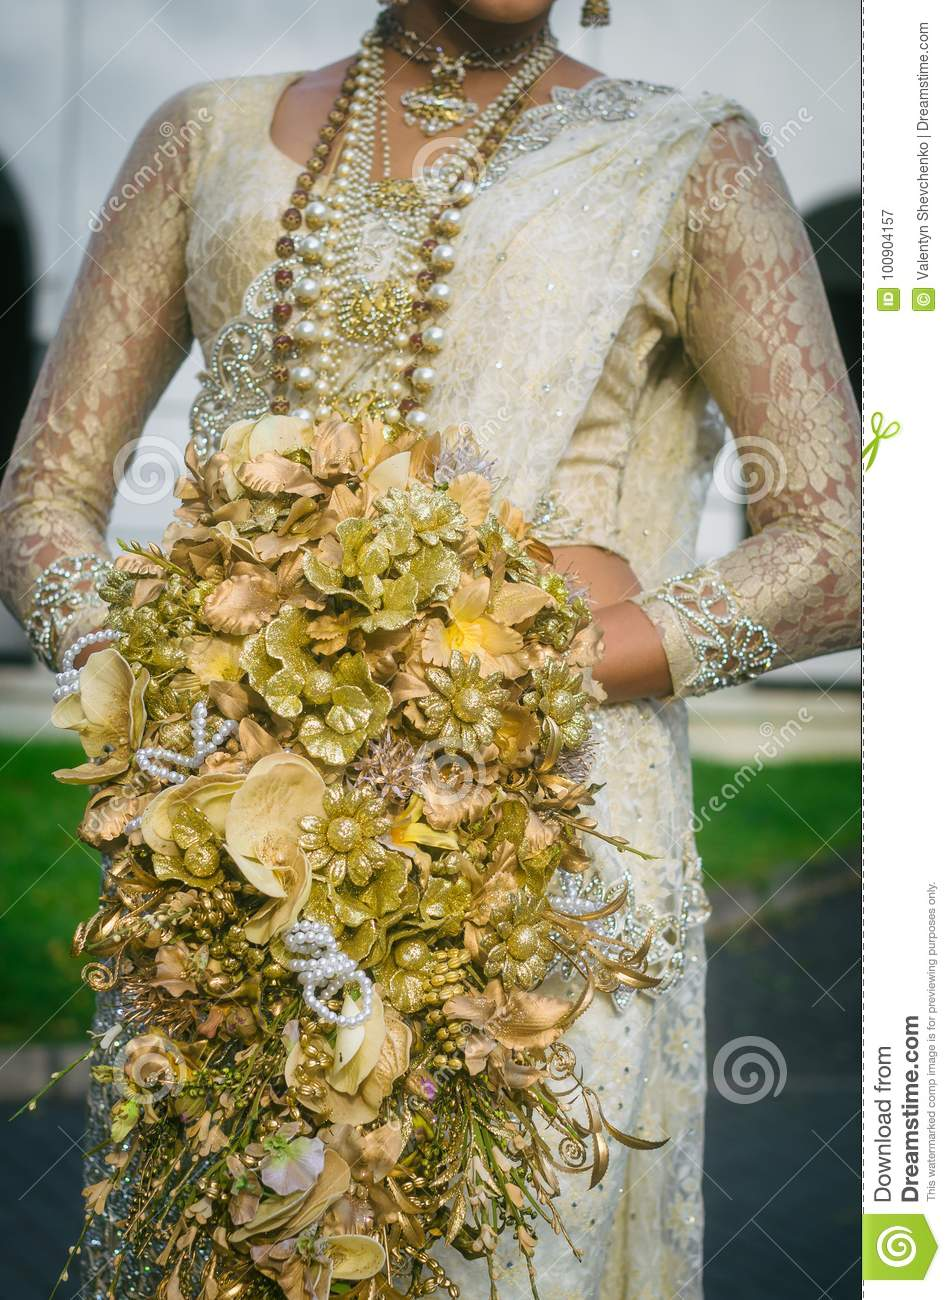 Wedding bouquet in hands of stock image image of green decorated download wedding bouquet in hands of stock image image of green decorated 100904157 izmirmasajfo